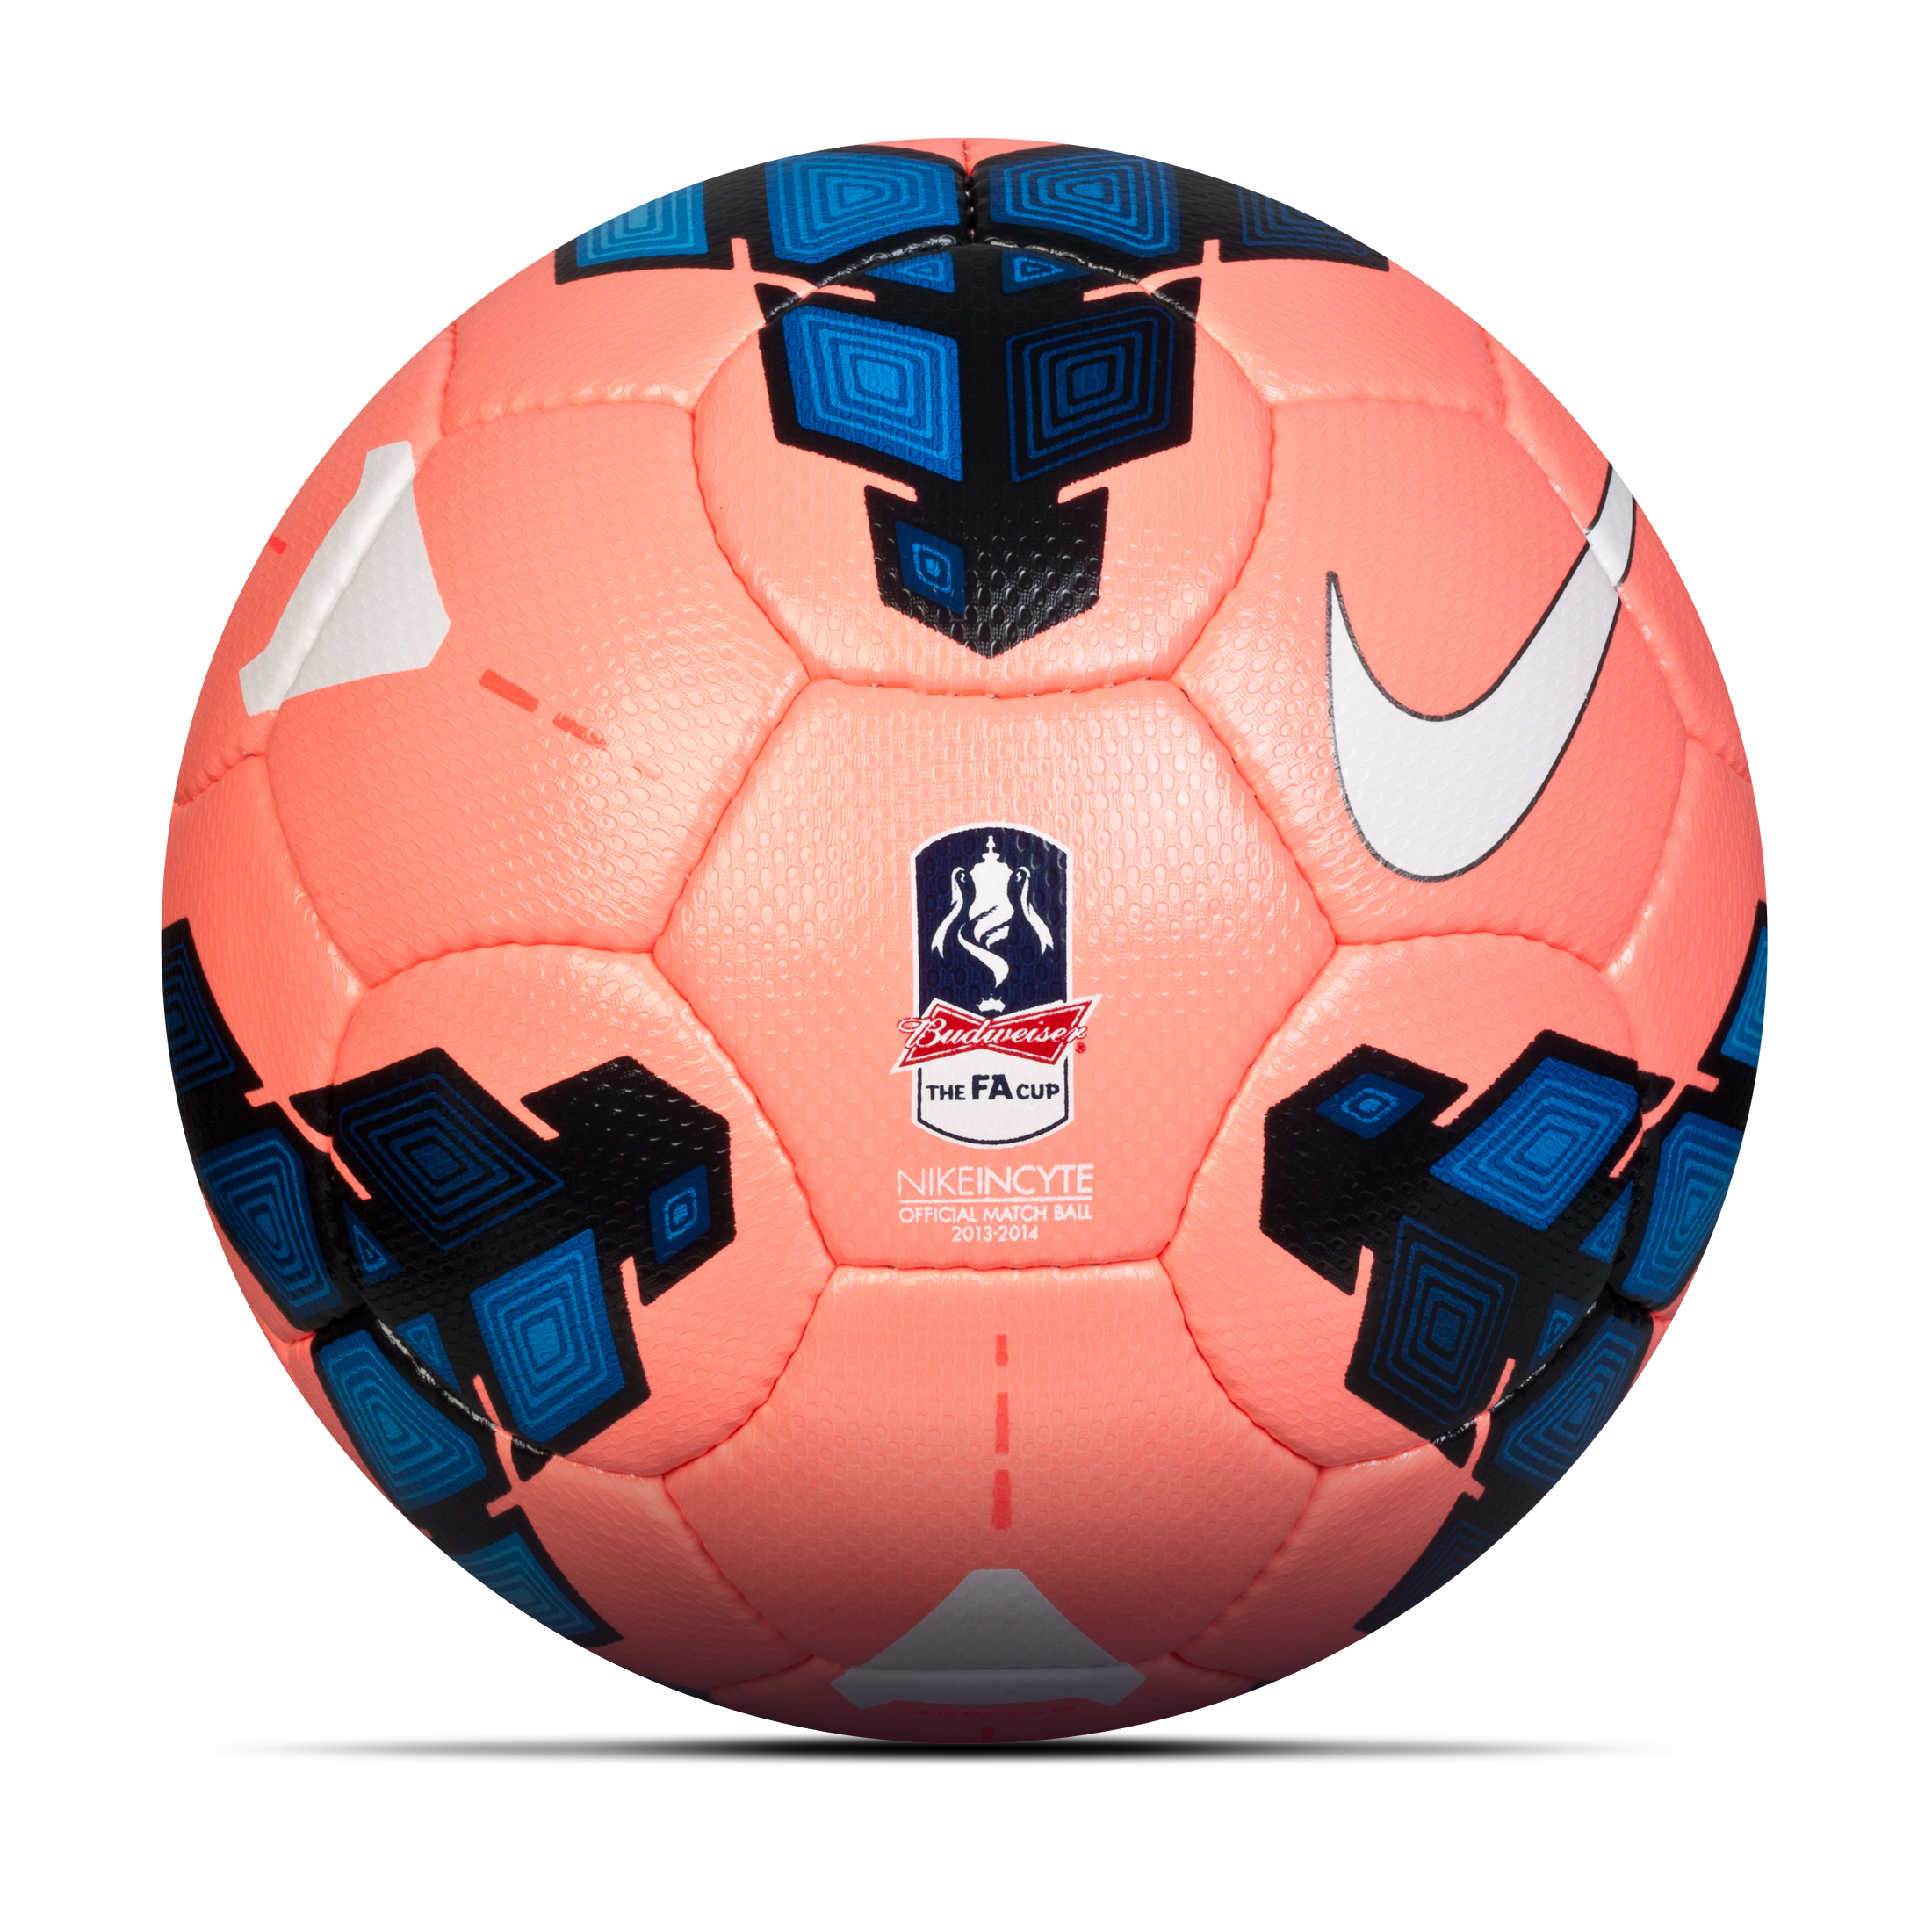 Nike Incyte FA Cup Official Match Football